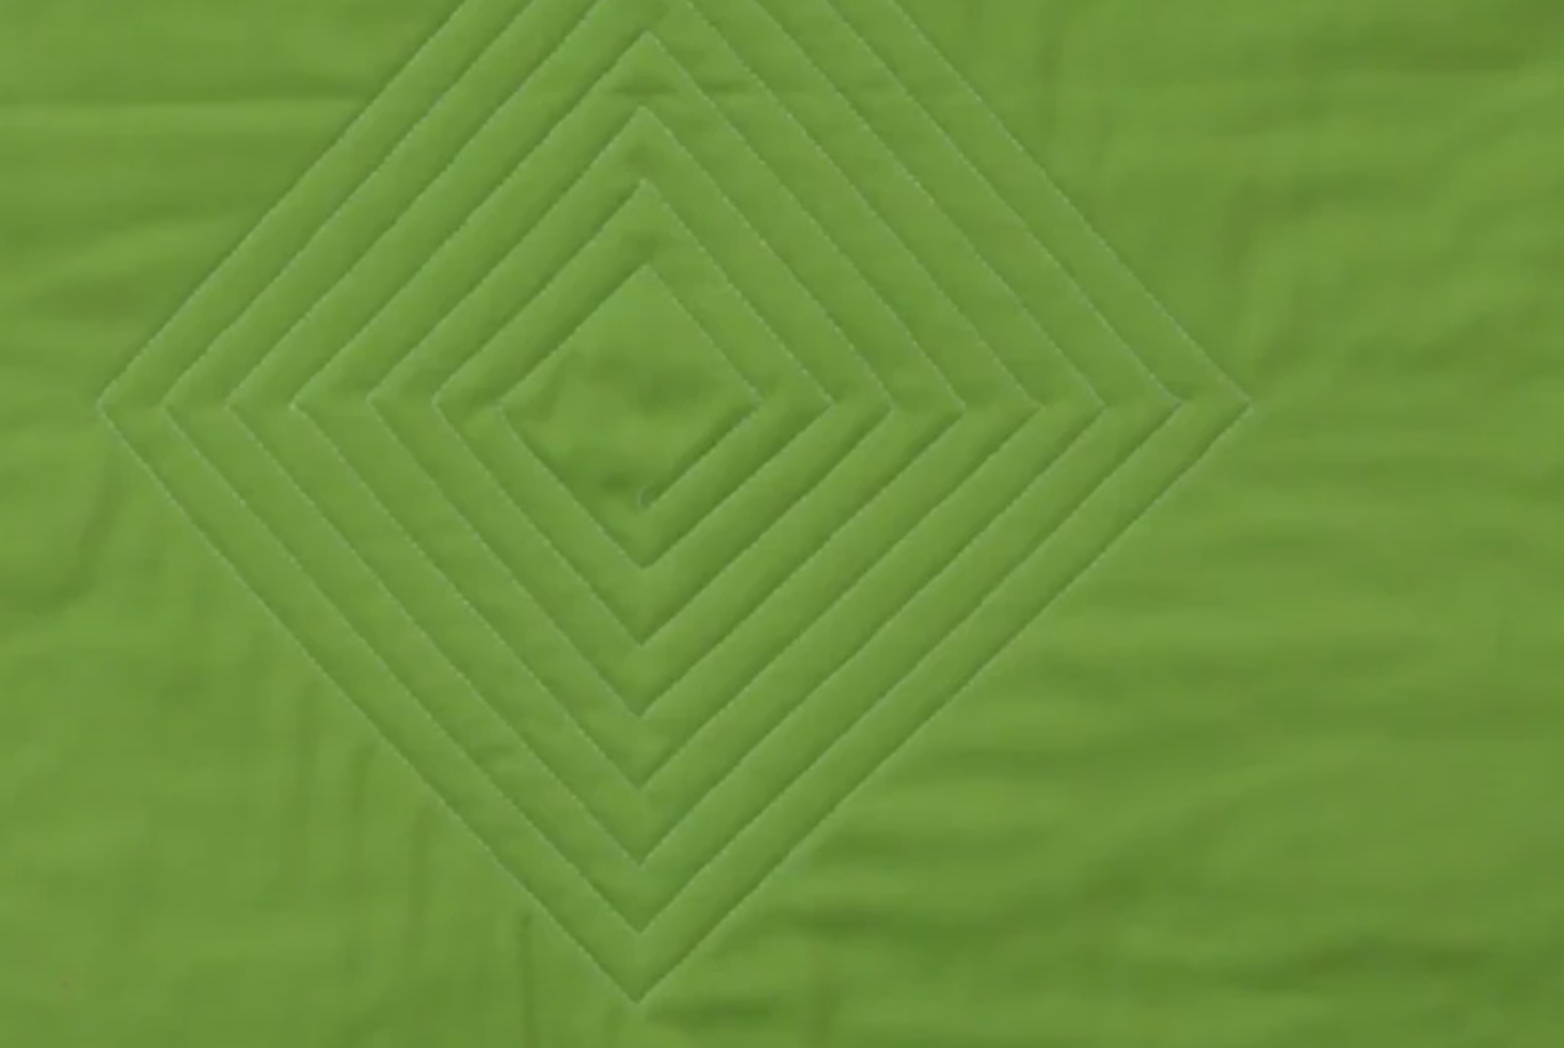 quilted diamond on green fabric